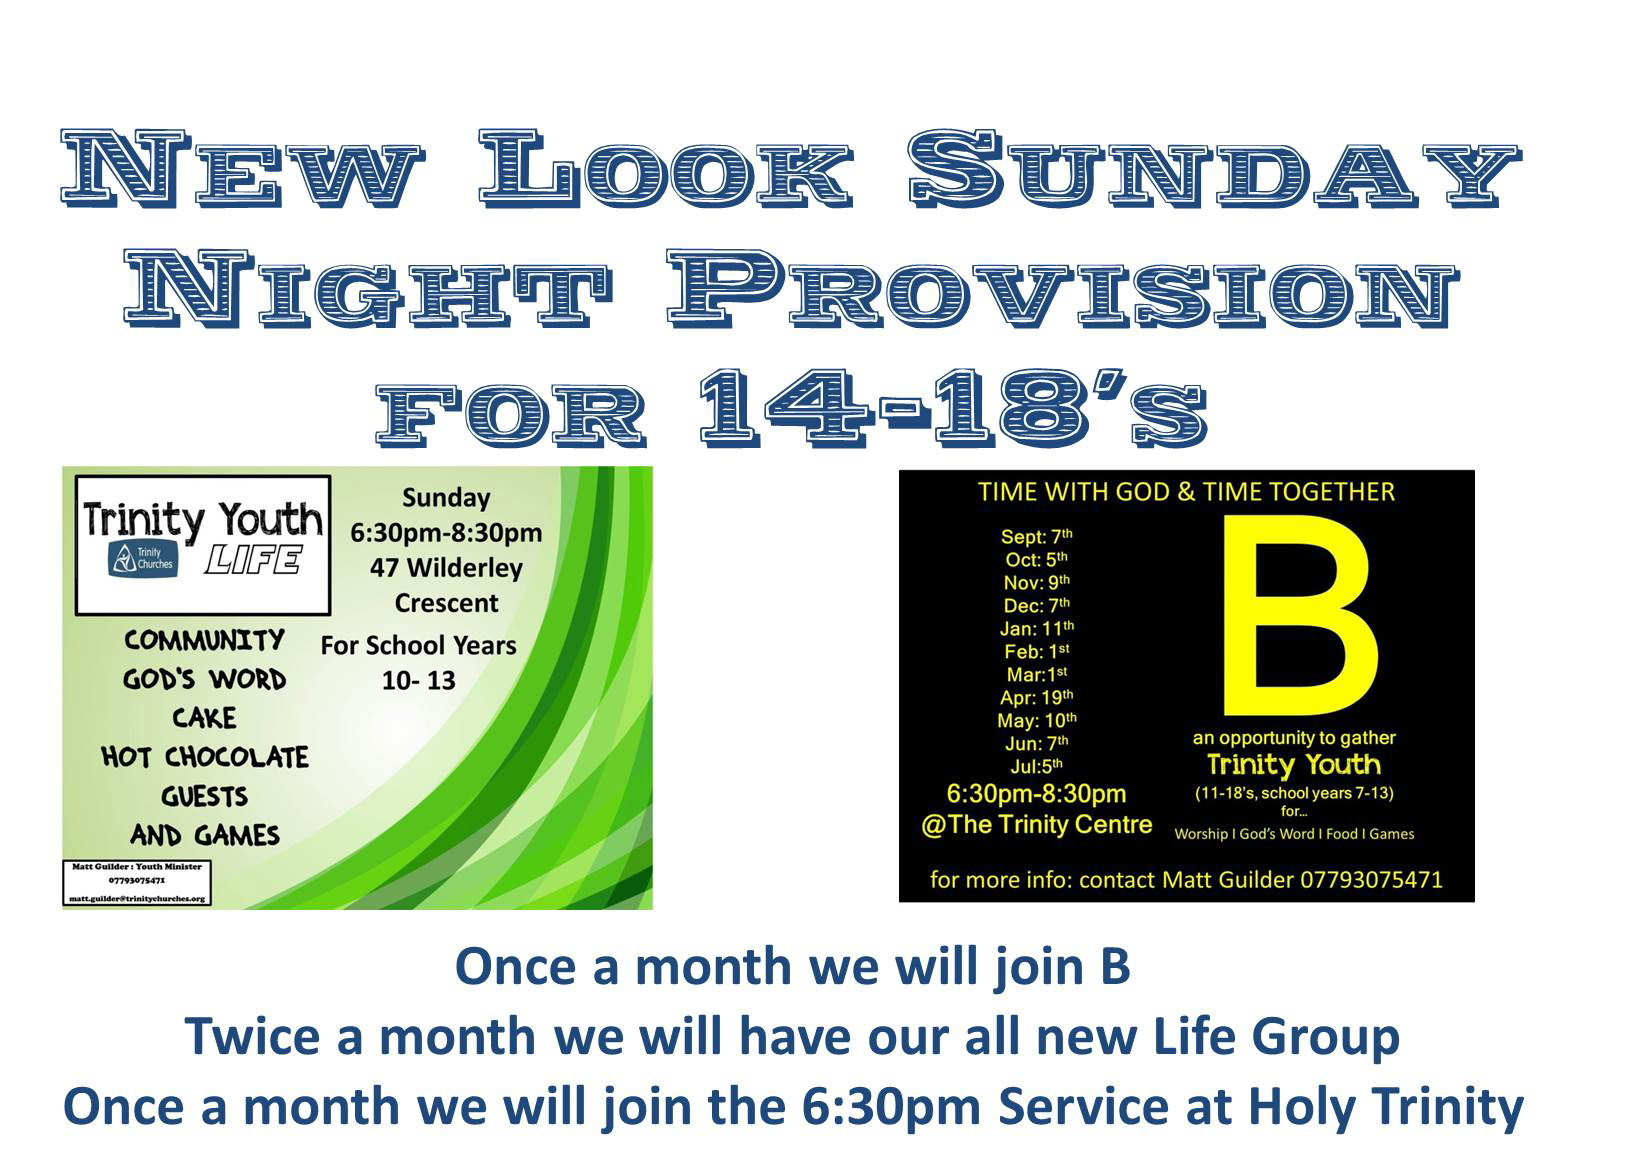 New Sunday night Youth Programme from September